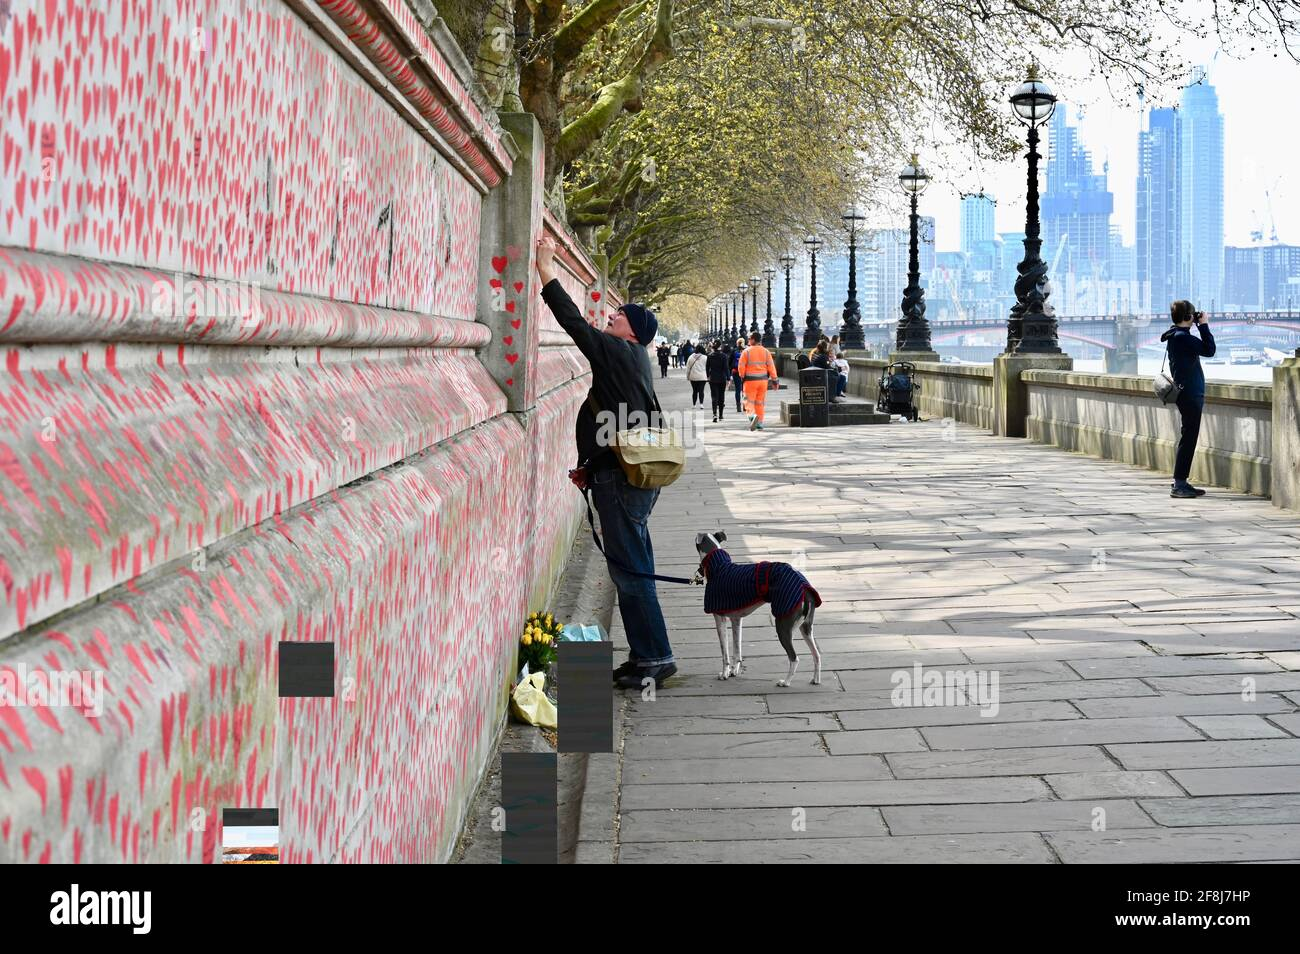 London. UK. 14th April 2021, The public continue to flock to the COVID memorial wall for the victims of the coronavirus who have passed away in the last year. St Thomas' Hospital, London Stock Photo